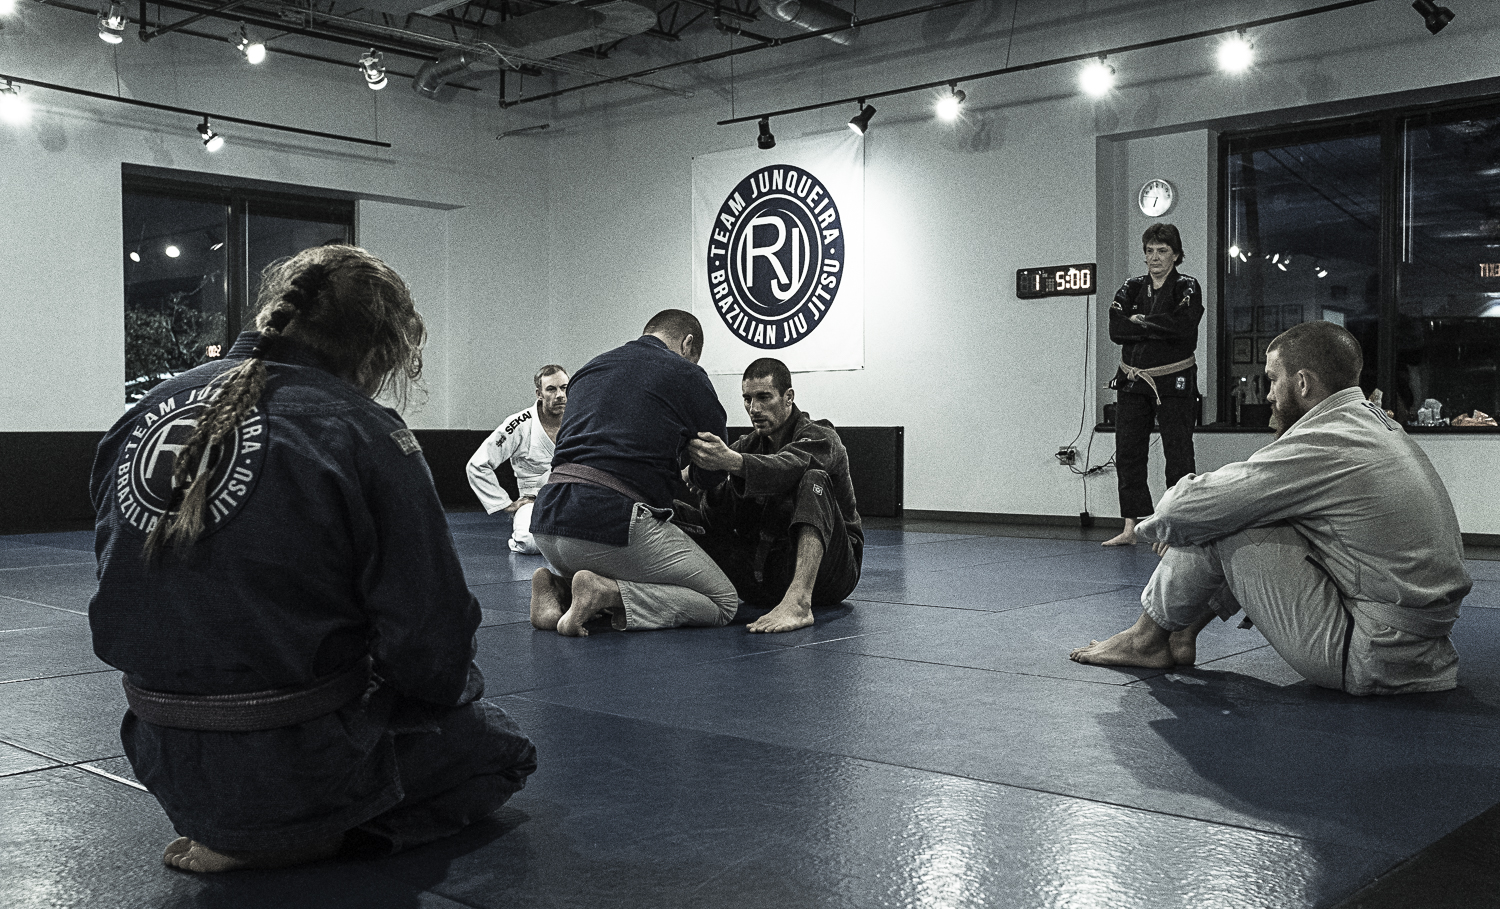 Chris Dube - Brown Belt   Chris Dube is a brown belt who teaches the children's competition classes as well as the noon adult classes. Before joining Team Junqueira in 2015, Chris trained at Gracie Barra Orlando under Marcio Simas. Chris is also a former NCAA Division 1 athlete and is a black belt in Taekwondo under Grandmasters T.H. Kim and Young Bo Kong.